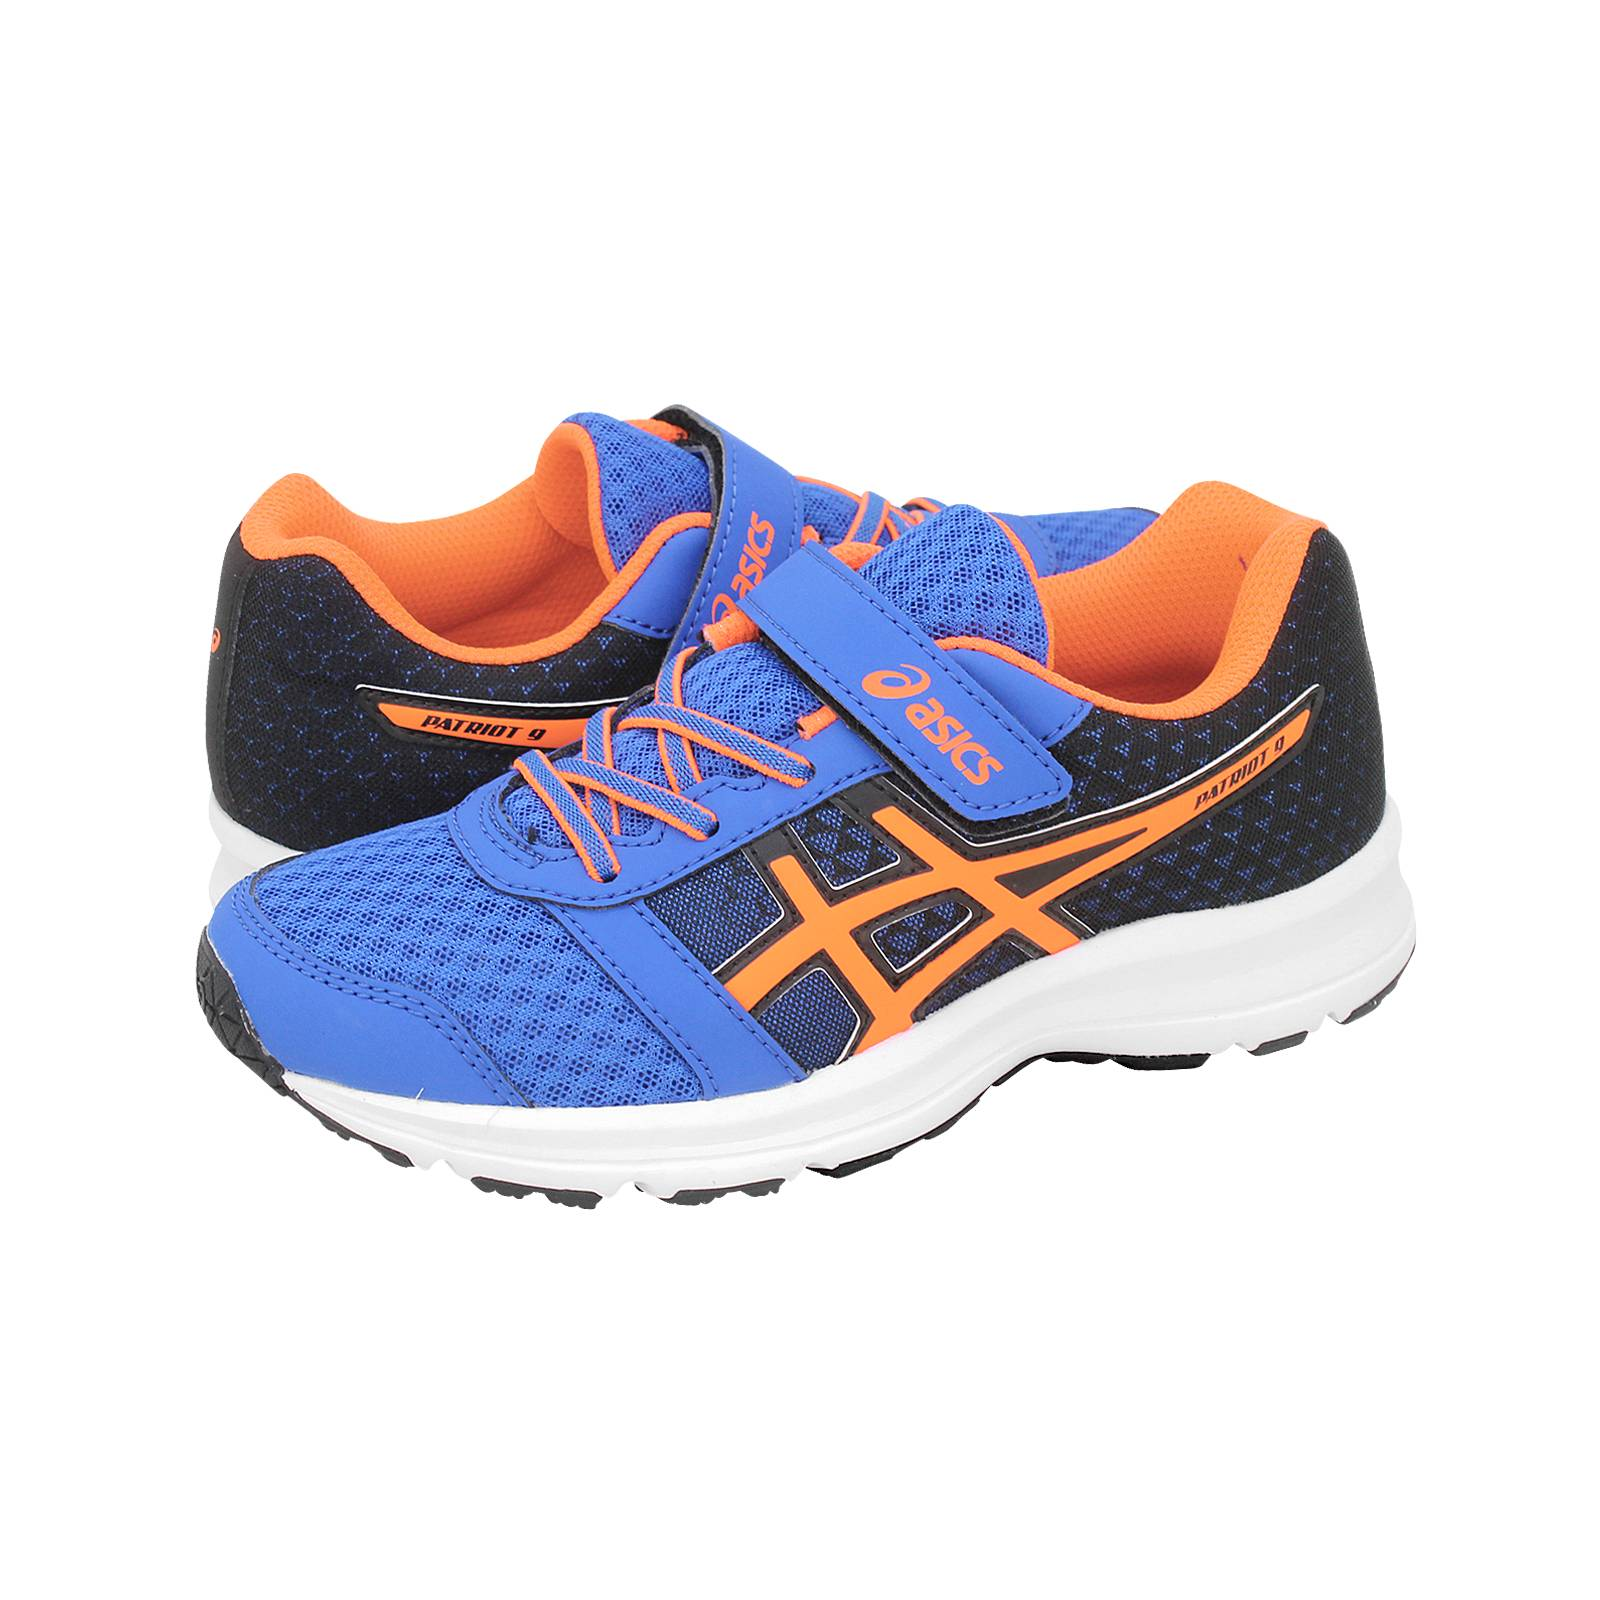 amplitud Analítico físico  Patriot 9 - Asics Athletic kids' shoes made of fabric and synthetic leather  - Gianna Kazakou Online